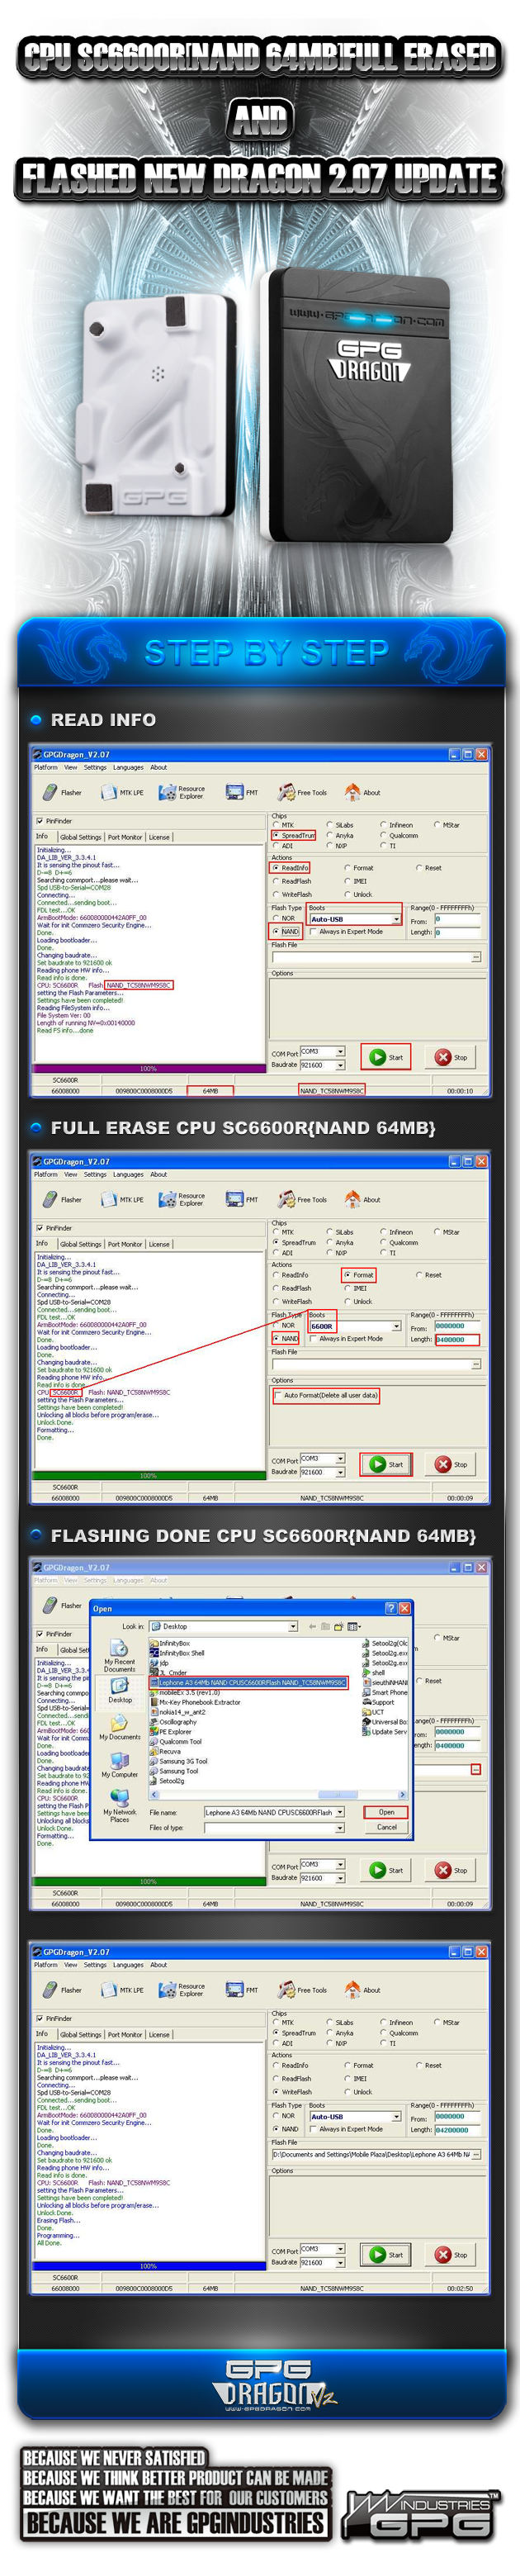 2011 06 15 CPU SC6600R7BNand 64Mb7DFull Erased And Flashed New Dragon 207 Update 630